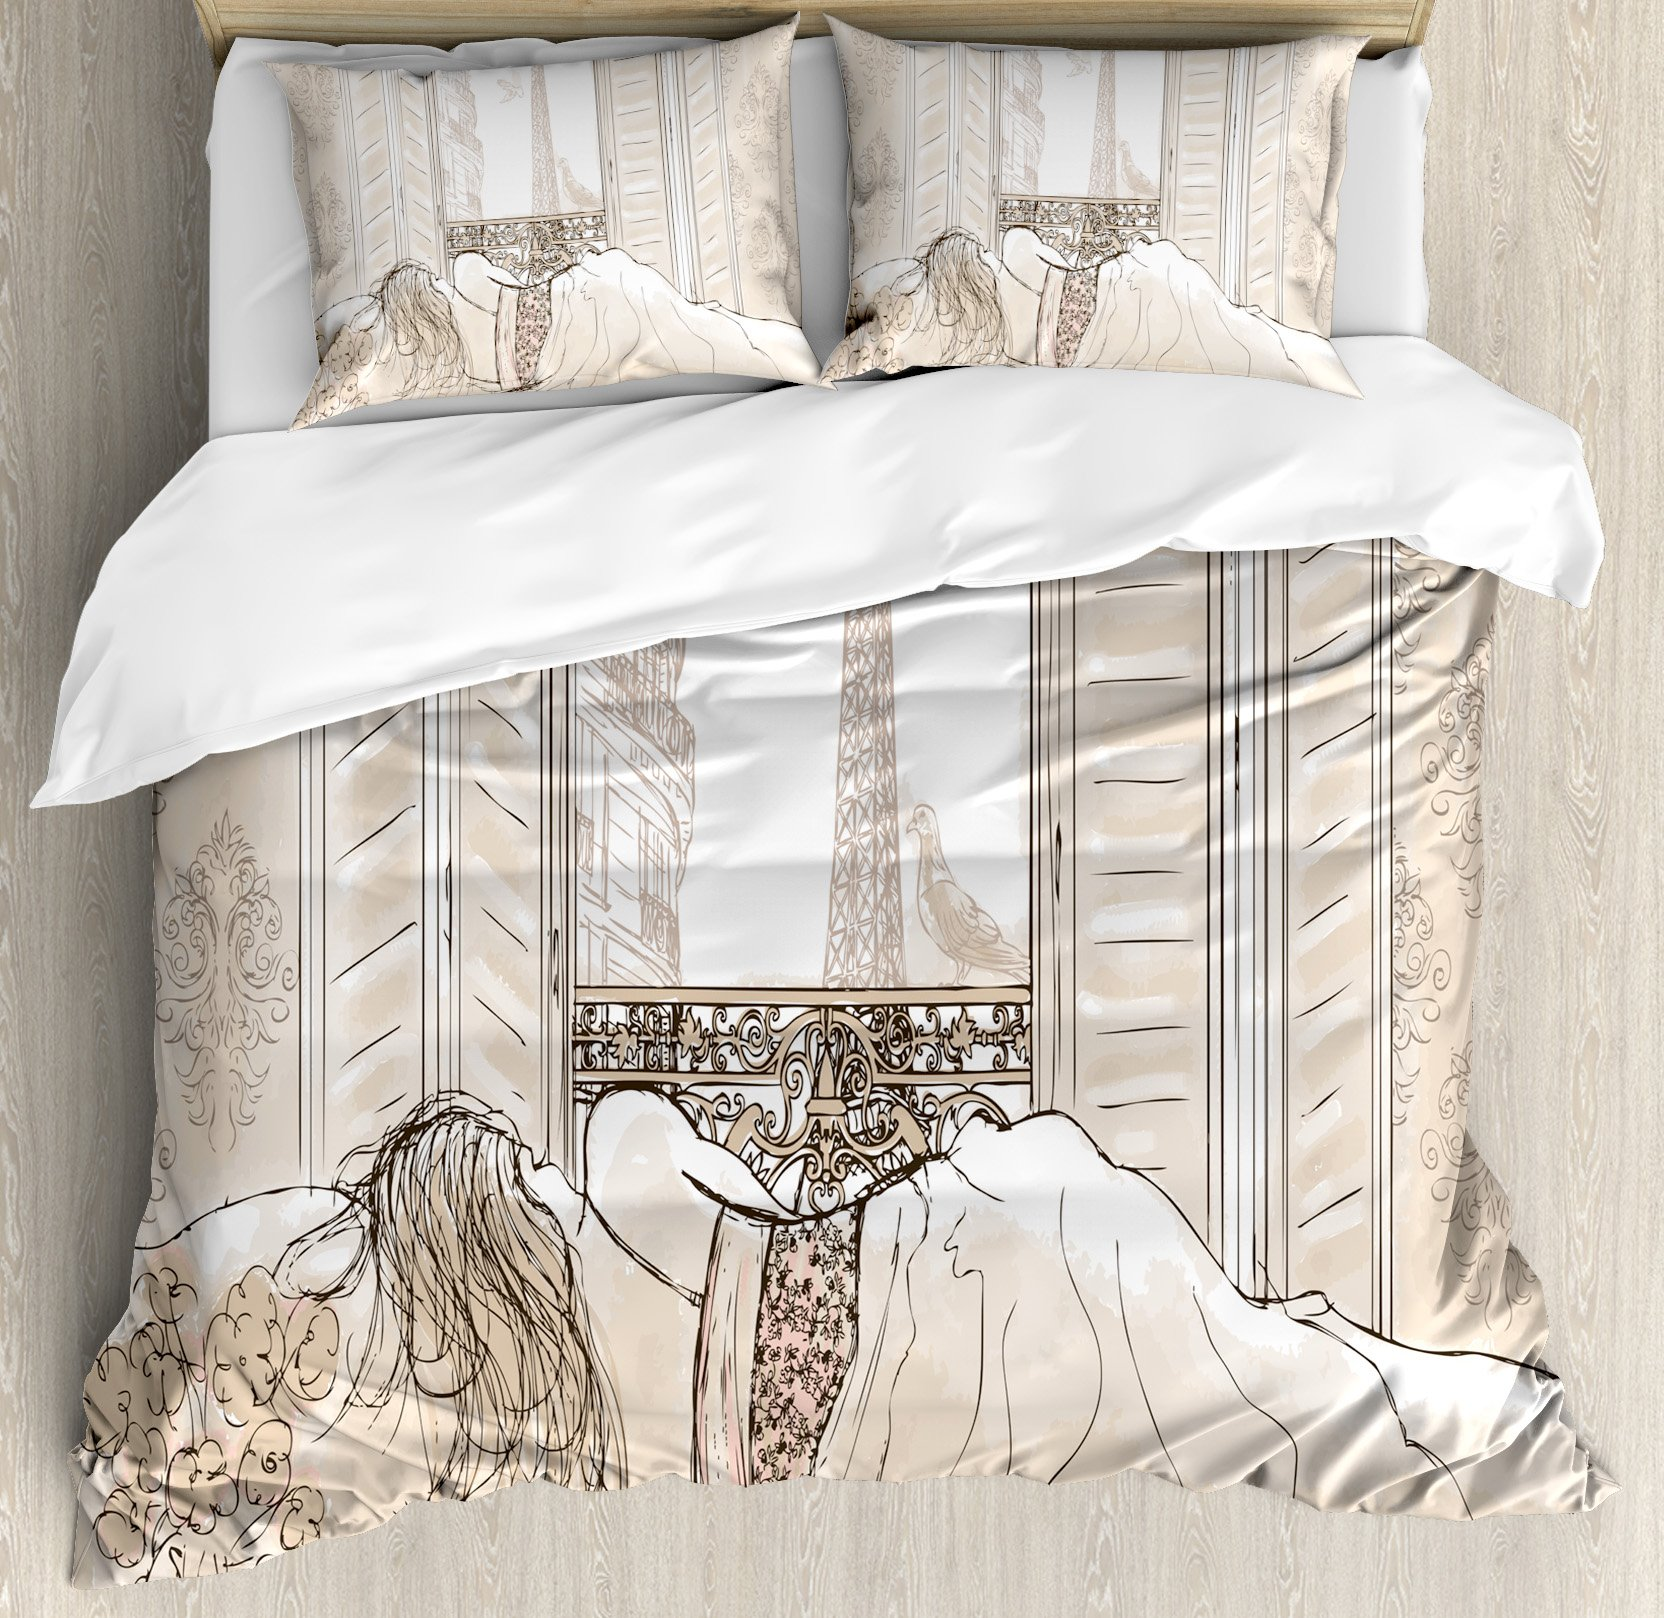 Paris Decor Duvet Cover Set by Ambesonne, Parisian Woman Sleeping with the View of Eiffiel Tower from Window Romance Skecthy Modern Art, 3 Piece Bedding Set with Pillow Shams, Queen / Full, Cream